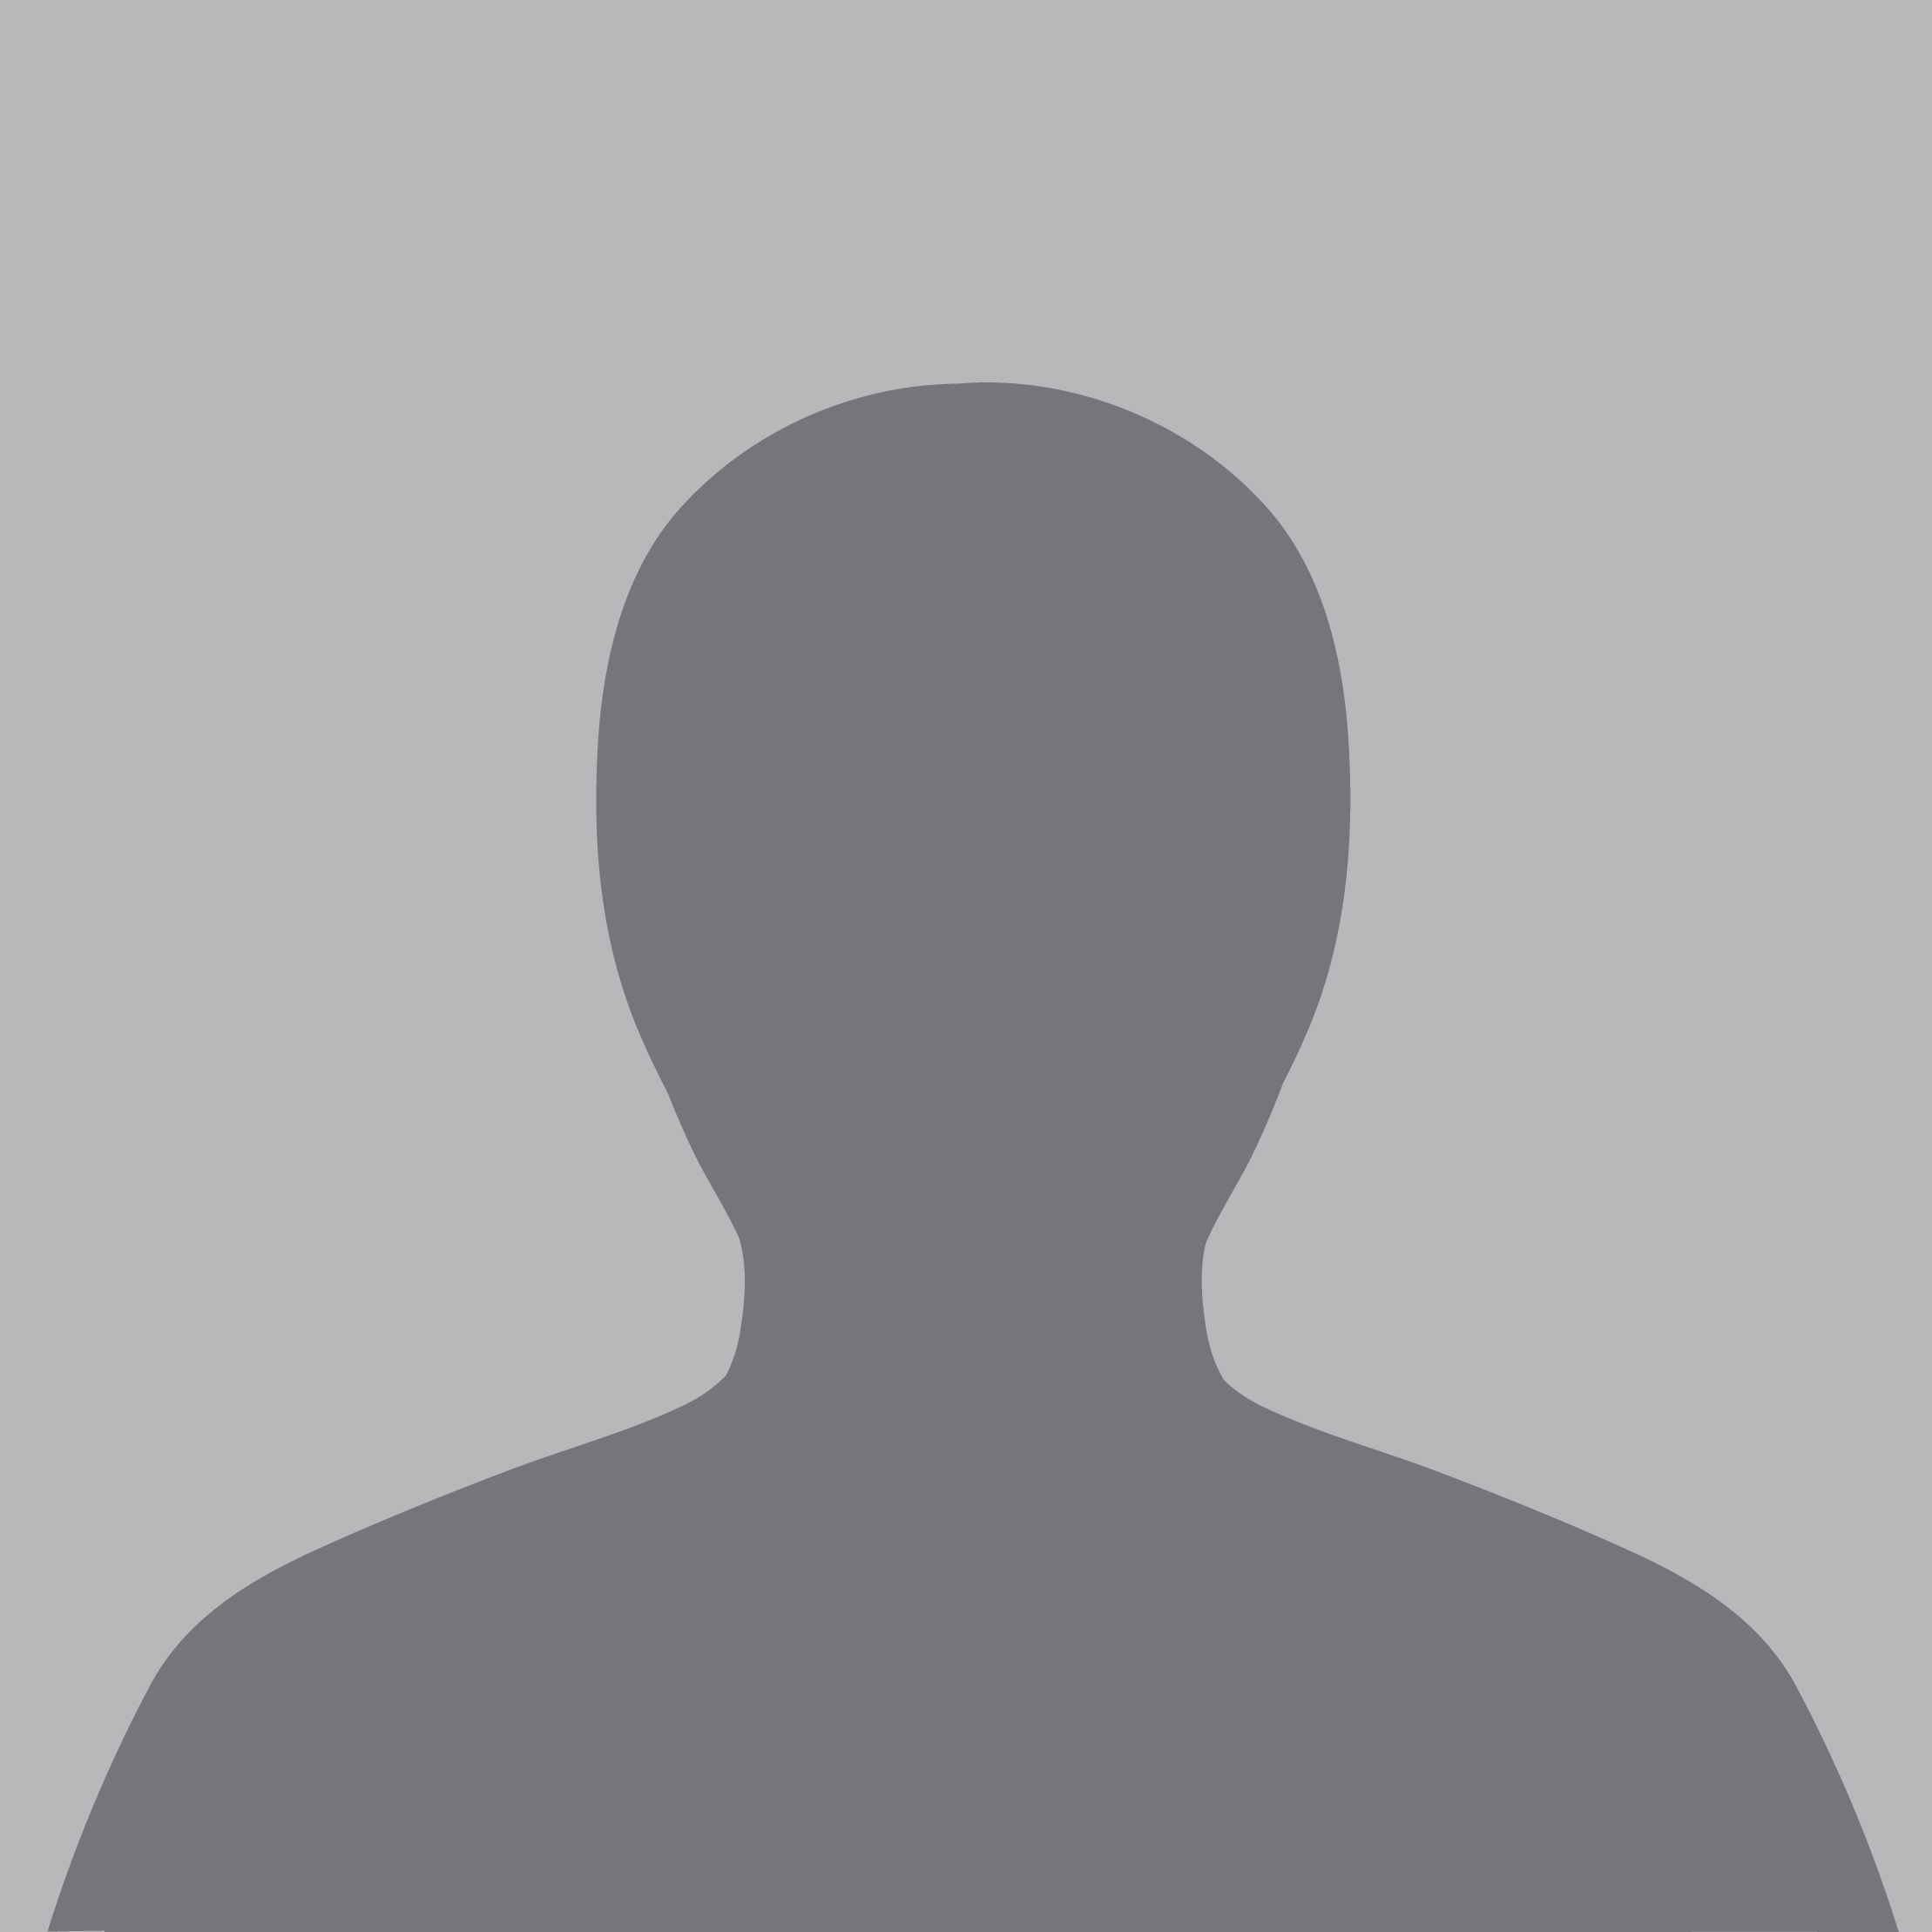 Grey silhouette of a person from the chest up, used as a placeholder when no staff headshot is available